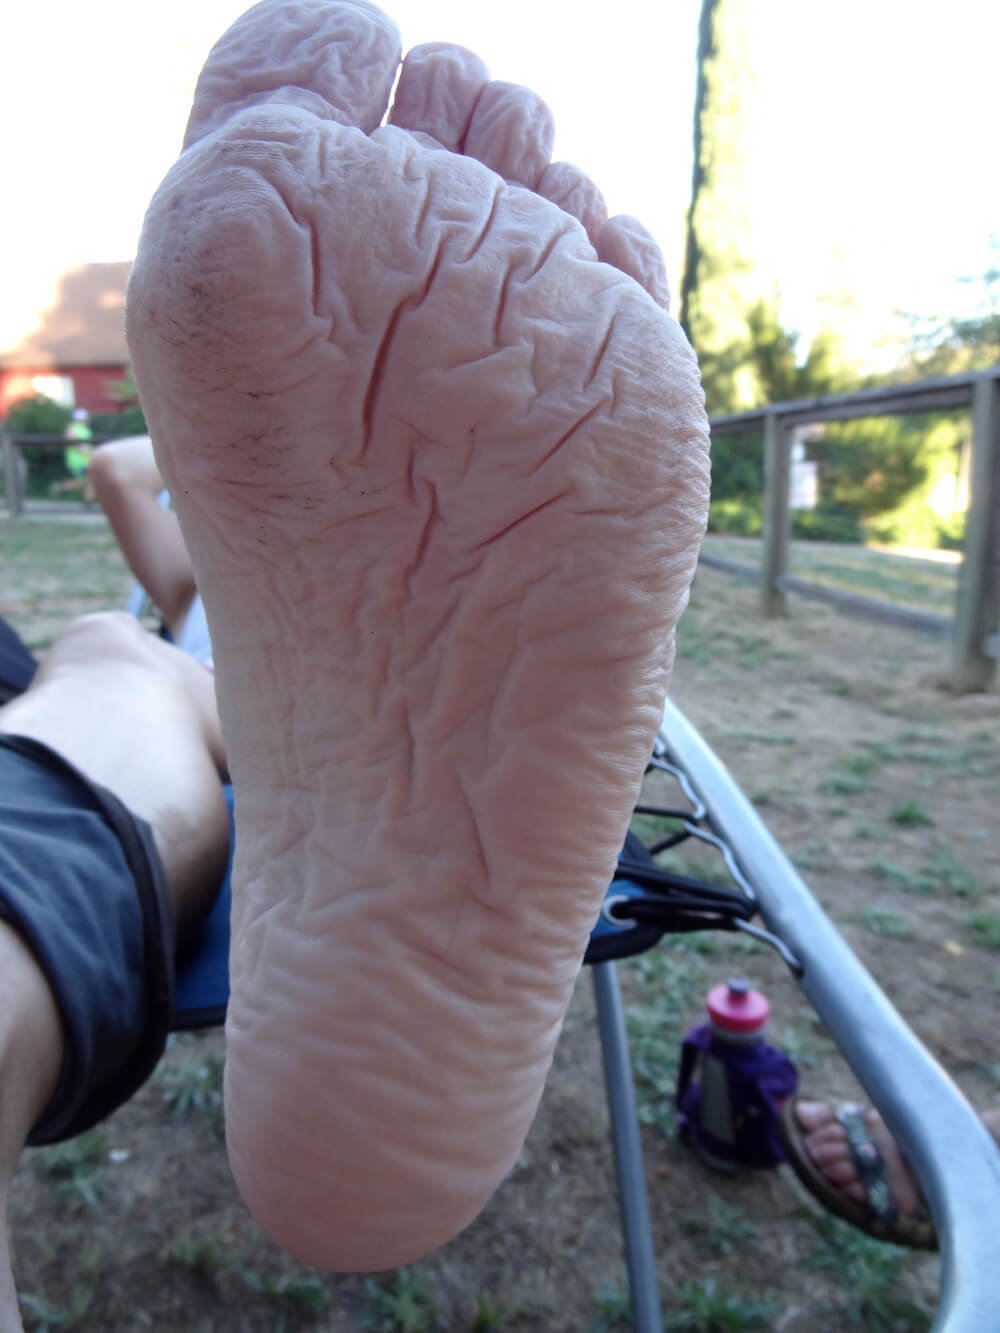 severe intact trench foot in an ultramarathon